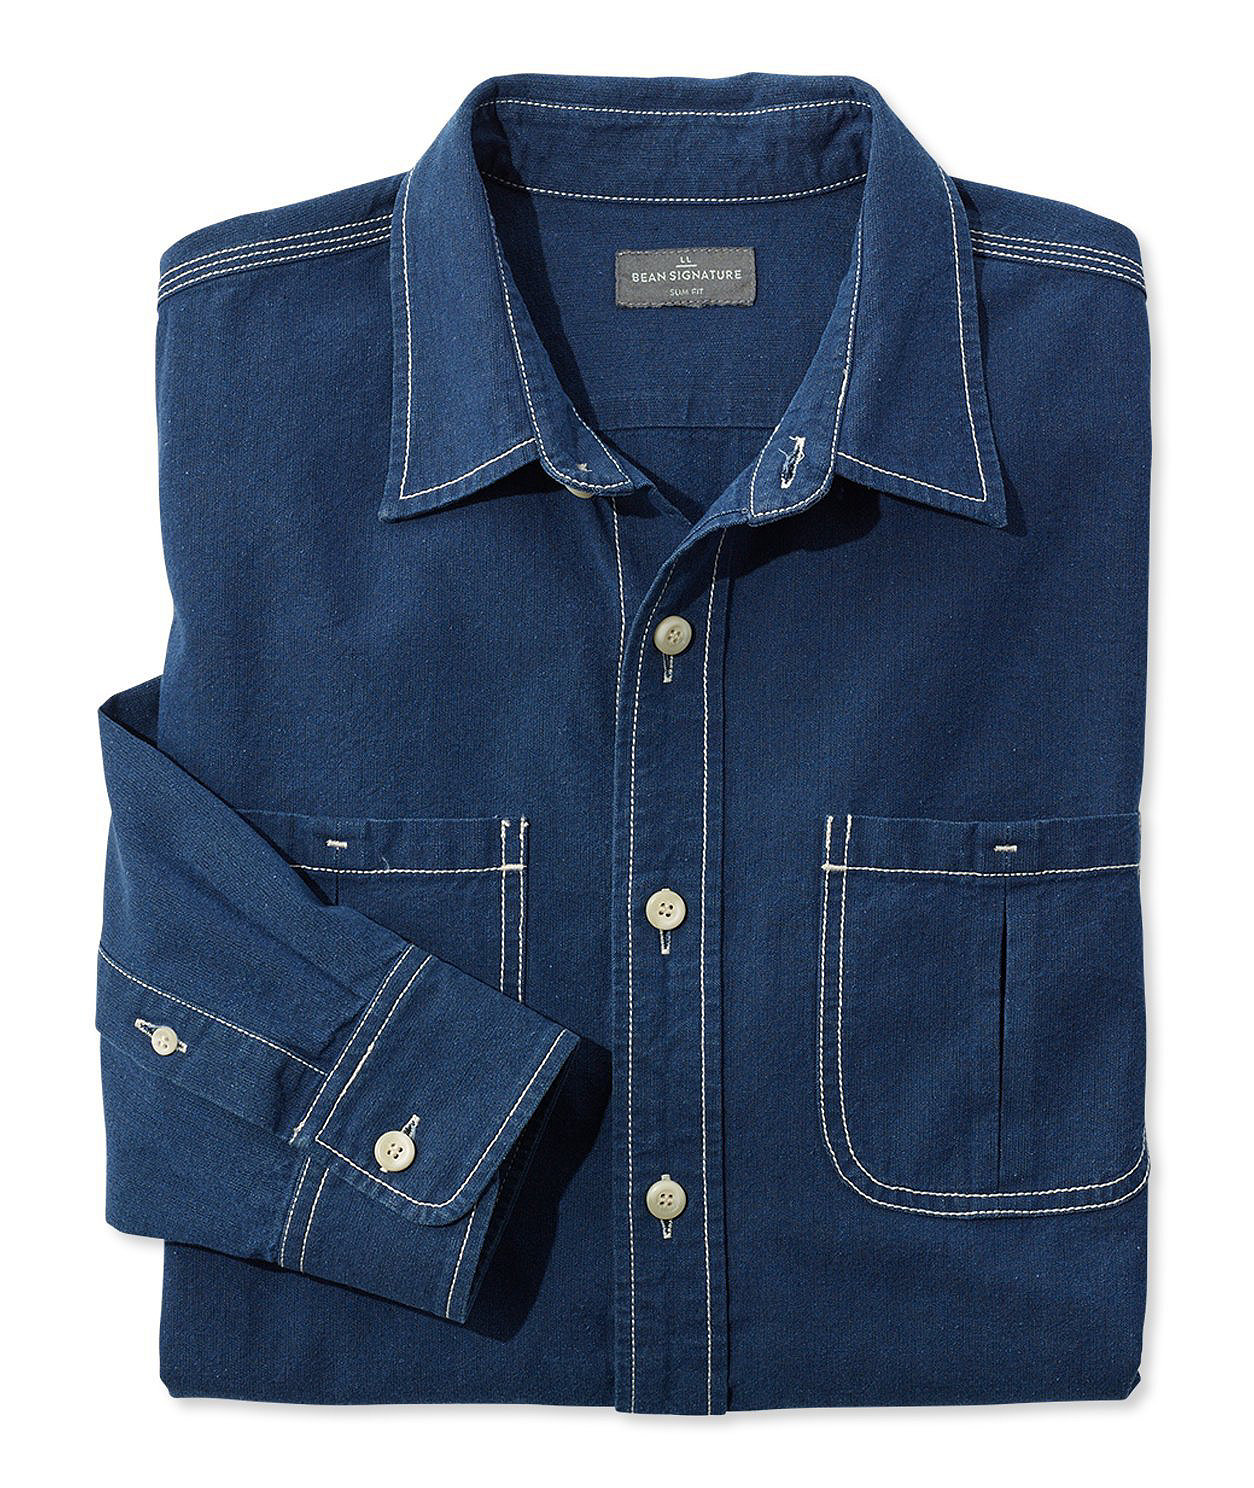 Signature Indigo Canvas Shirt by L.L.Bean